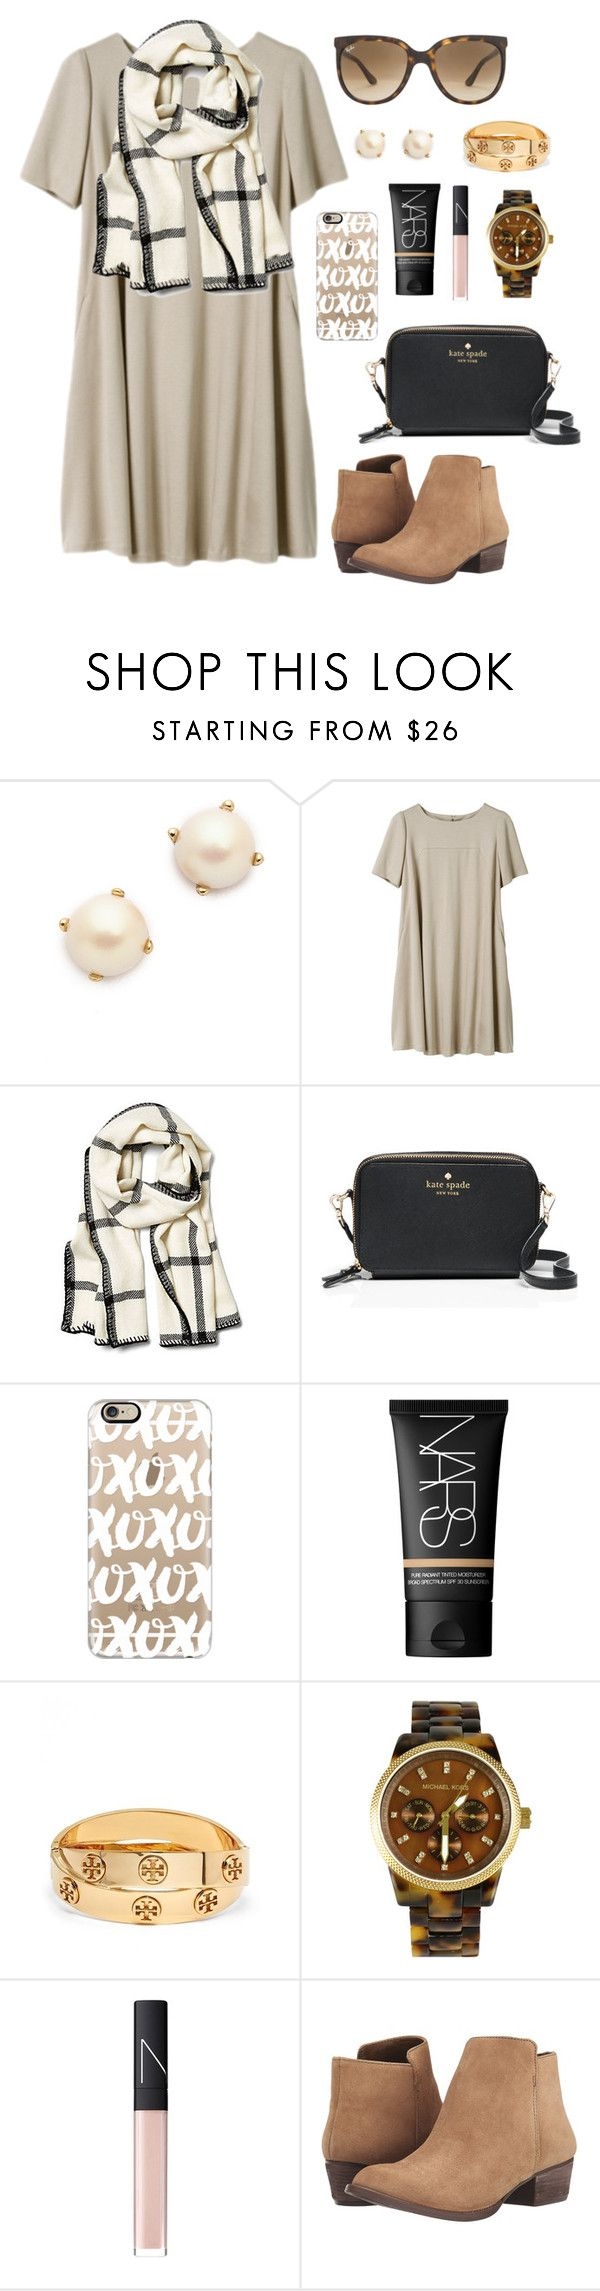 """current mood:"" by lillianjester ❤ liked on Polyvore featuring Kate Spade, Alicia Adams, Casetify, NARS Cosmetics, Tory Burch, Michael Kors, Jessica Simpson, Ray-Ban, women's clothing and women"